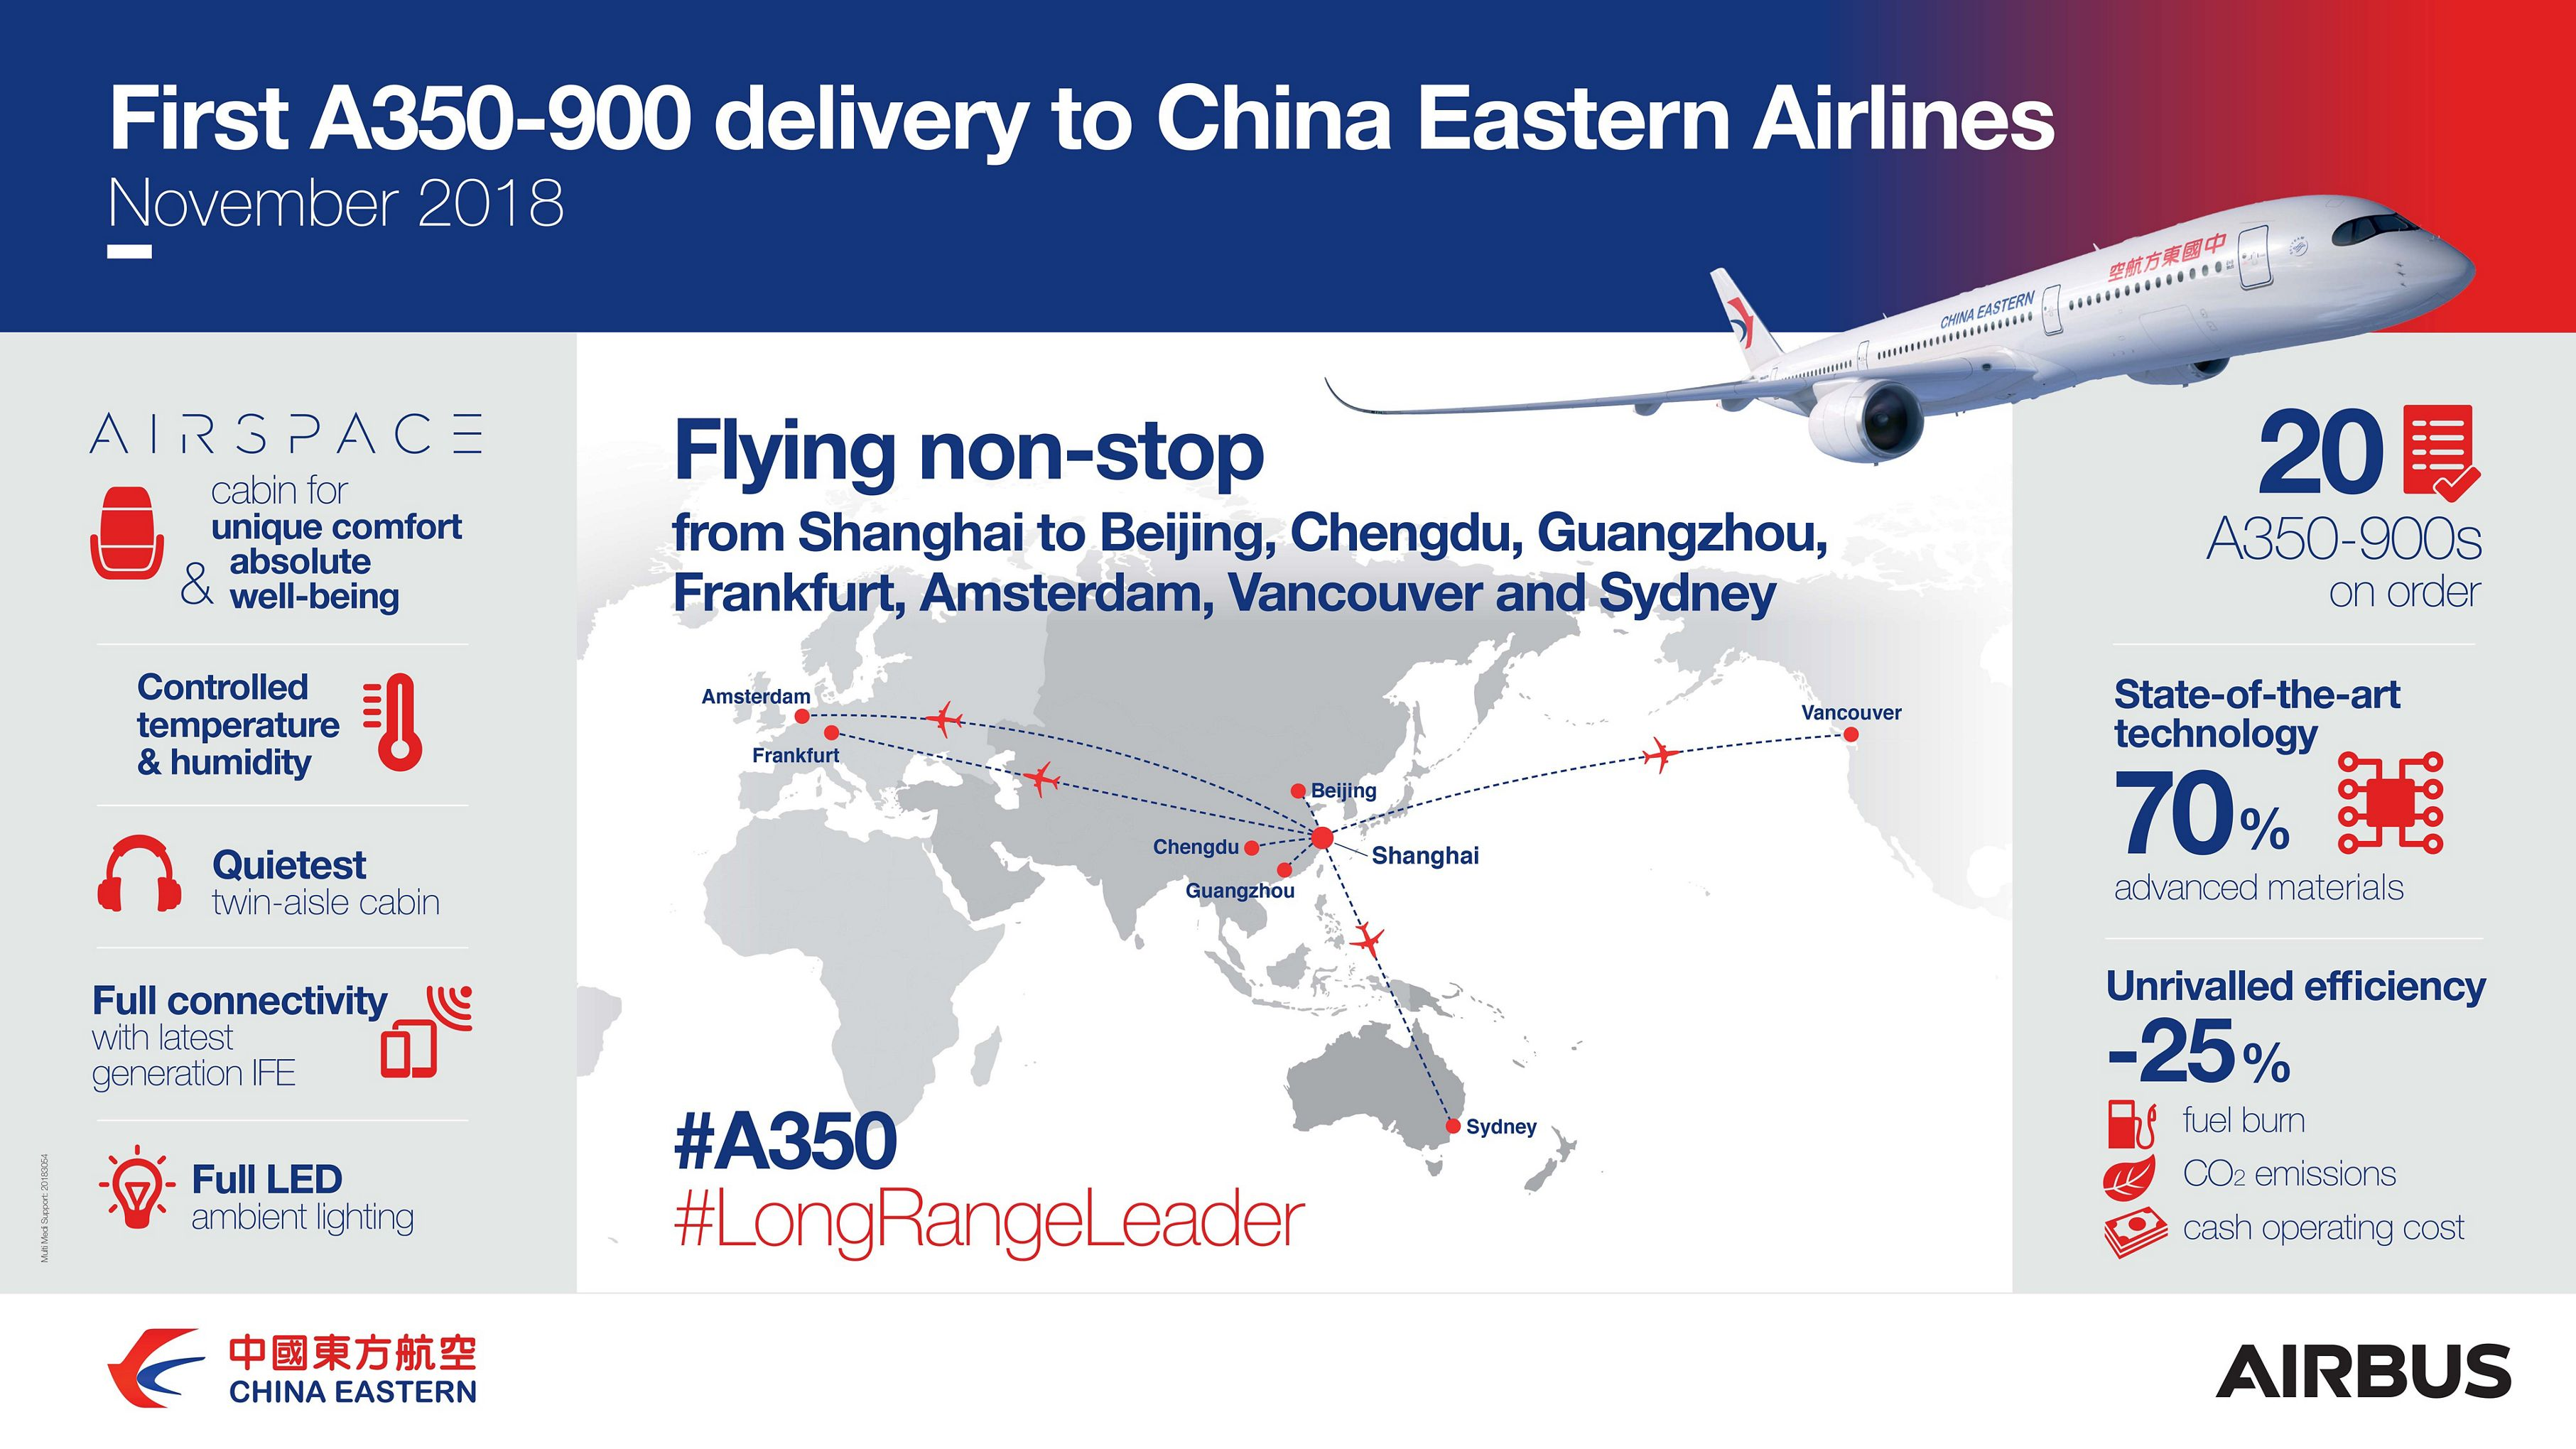 China Eastern Airlines takes delivery of its first Airbus A350-900 on